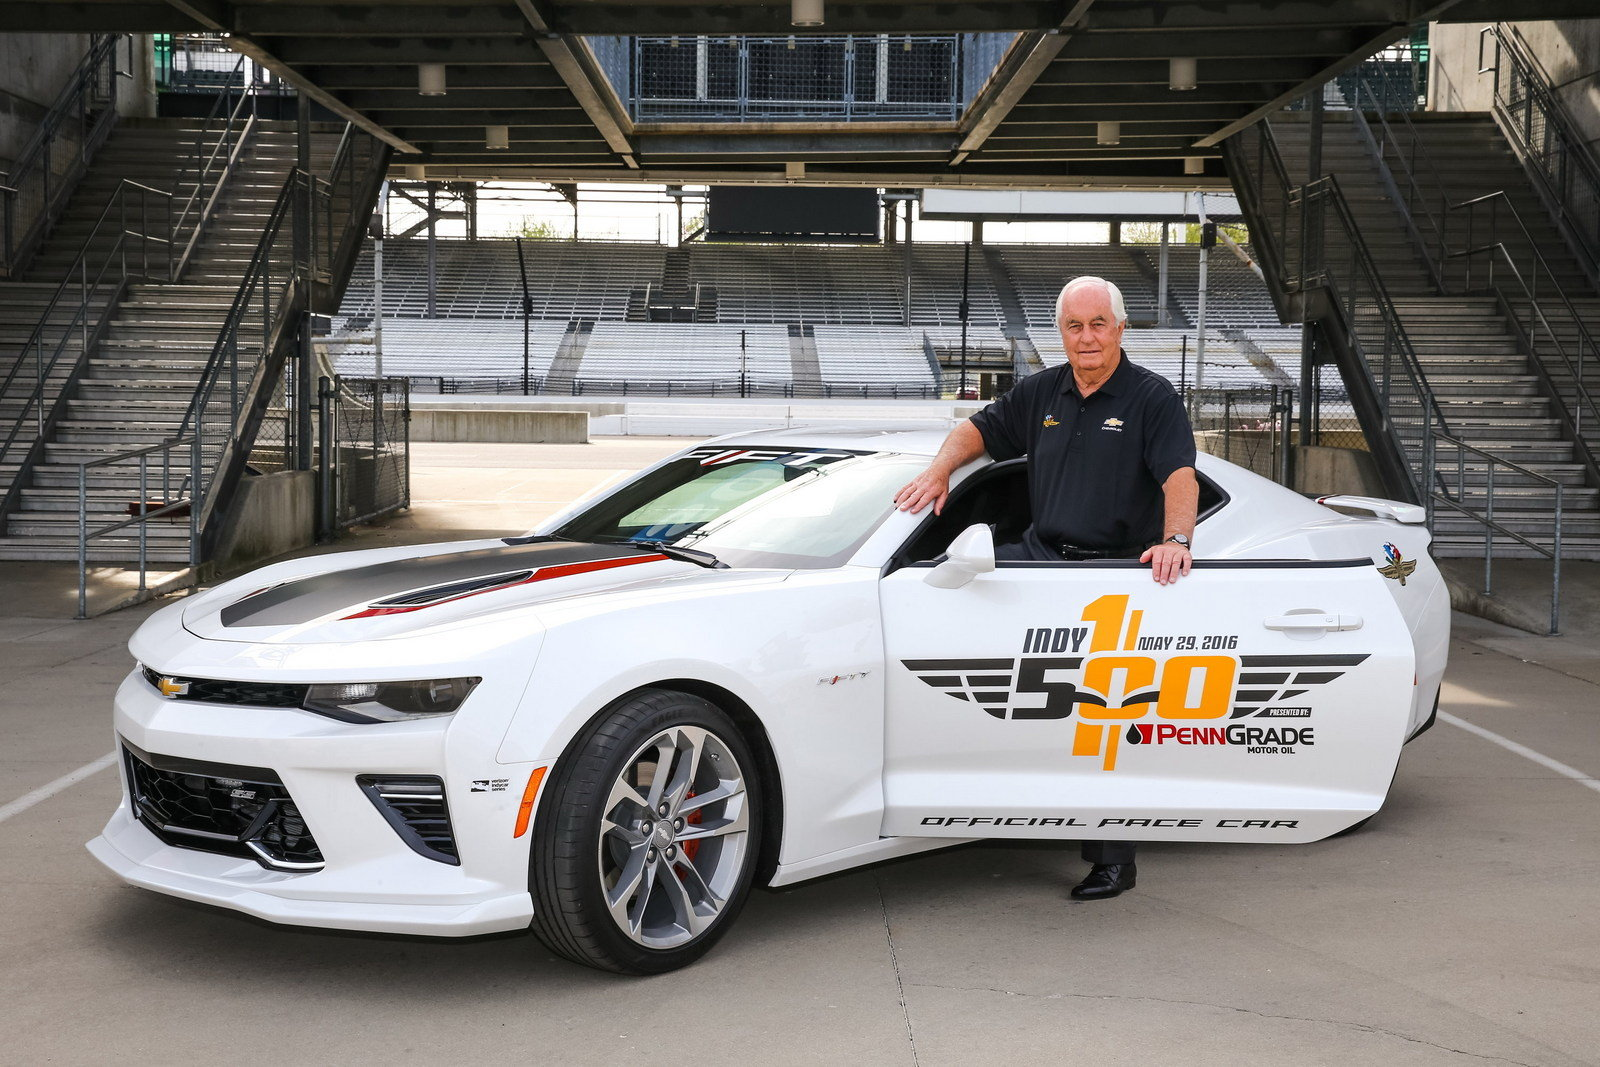 2016 chevrolet camaro ss indy 500 pace car picture 673181 car review top speed. Black Bedroom Furniture Sets. Home Design Ideas